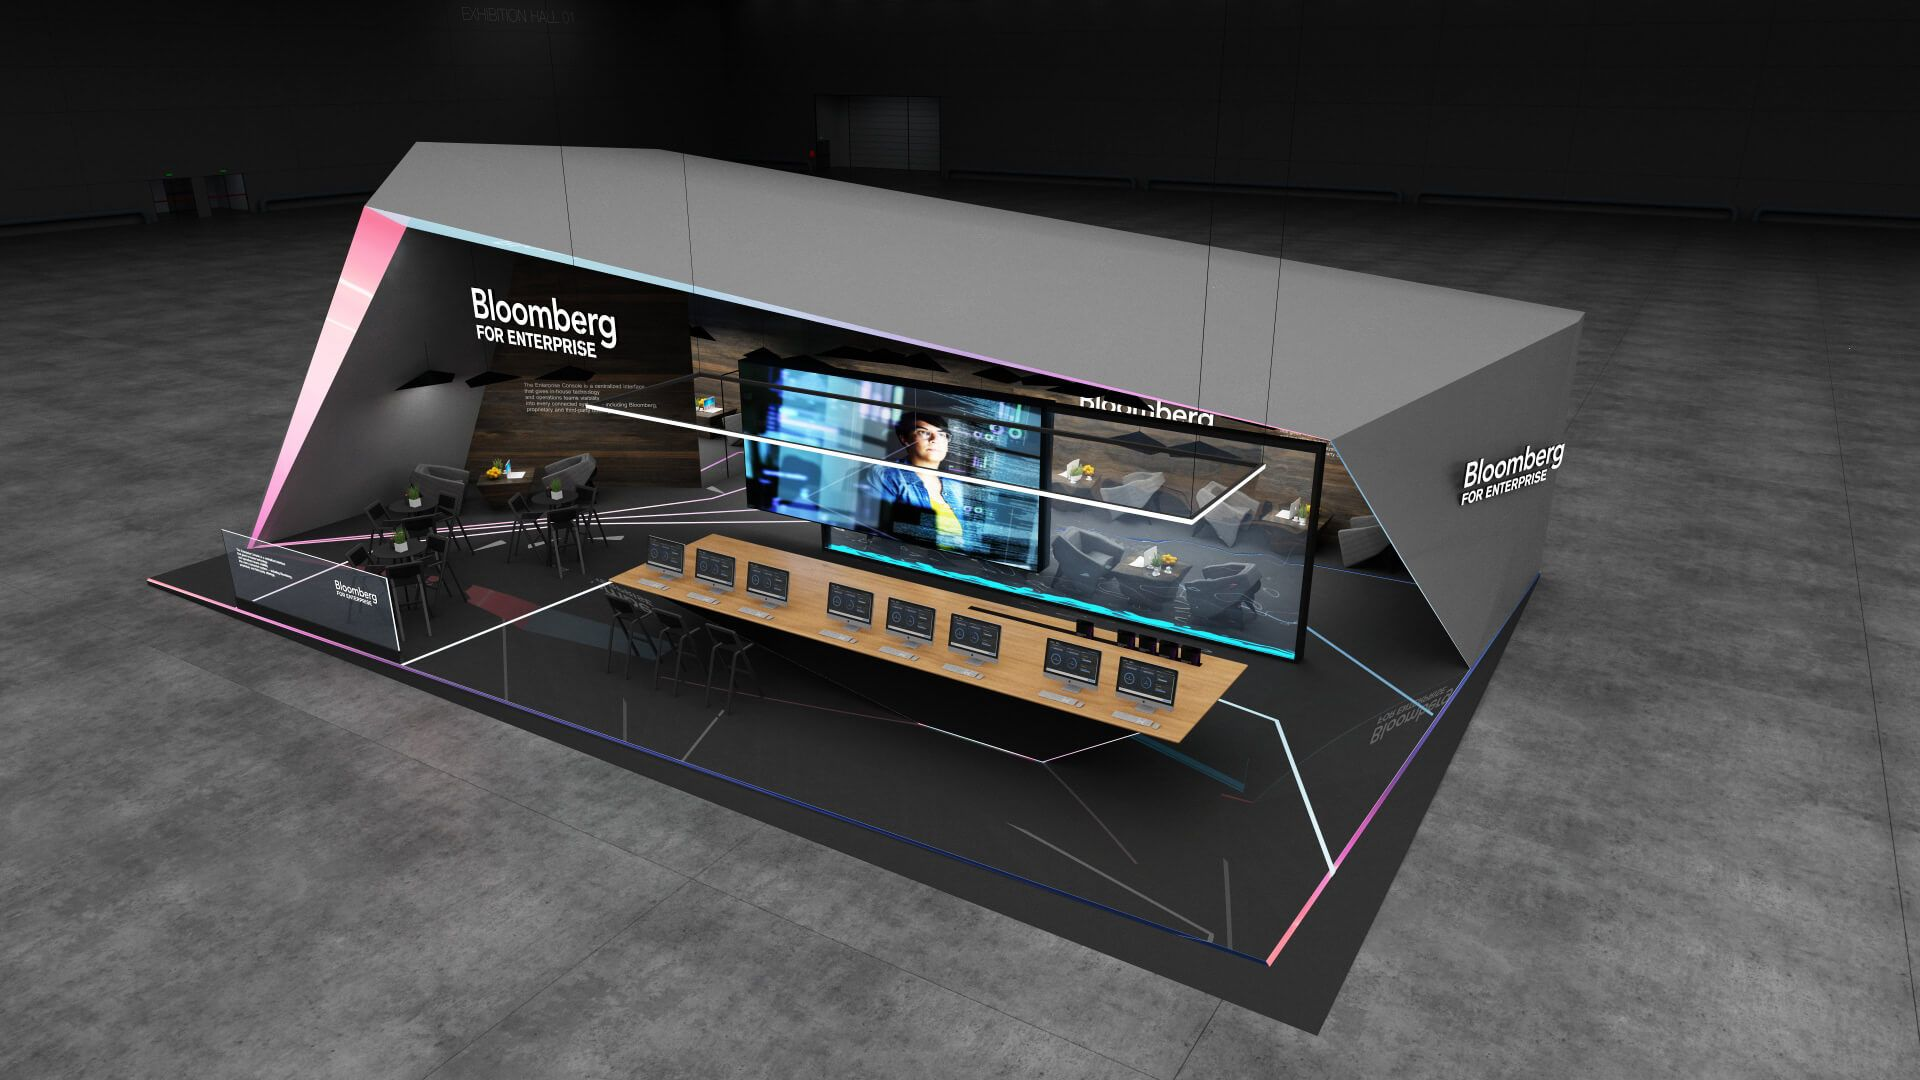 Gm Exhibition Stand Design : Bloomberg exhibition booth design concept gm stand design